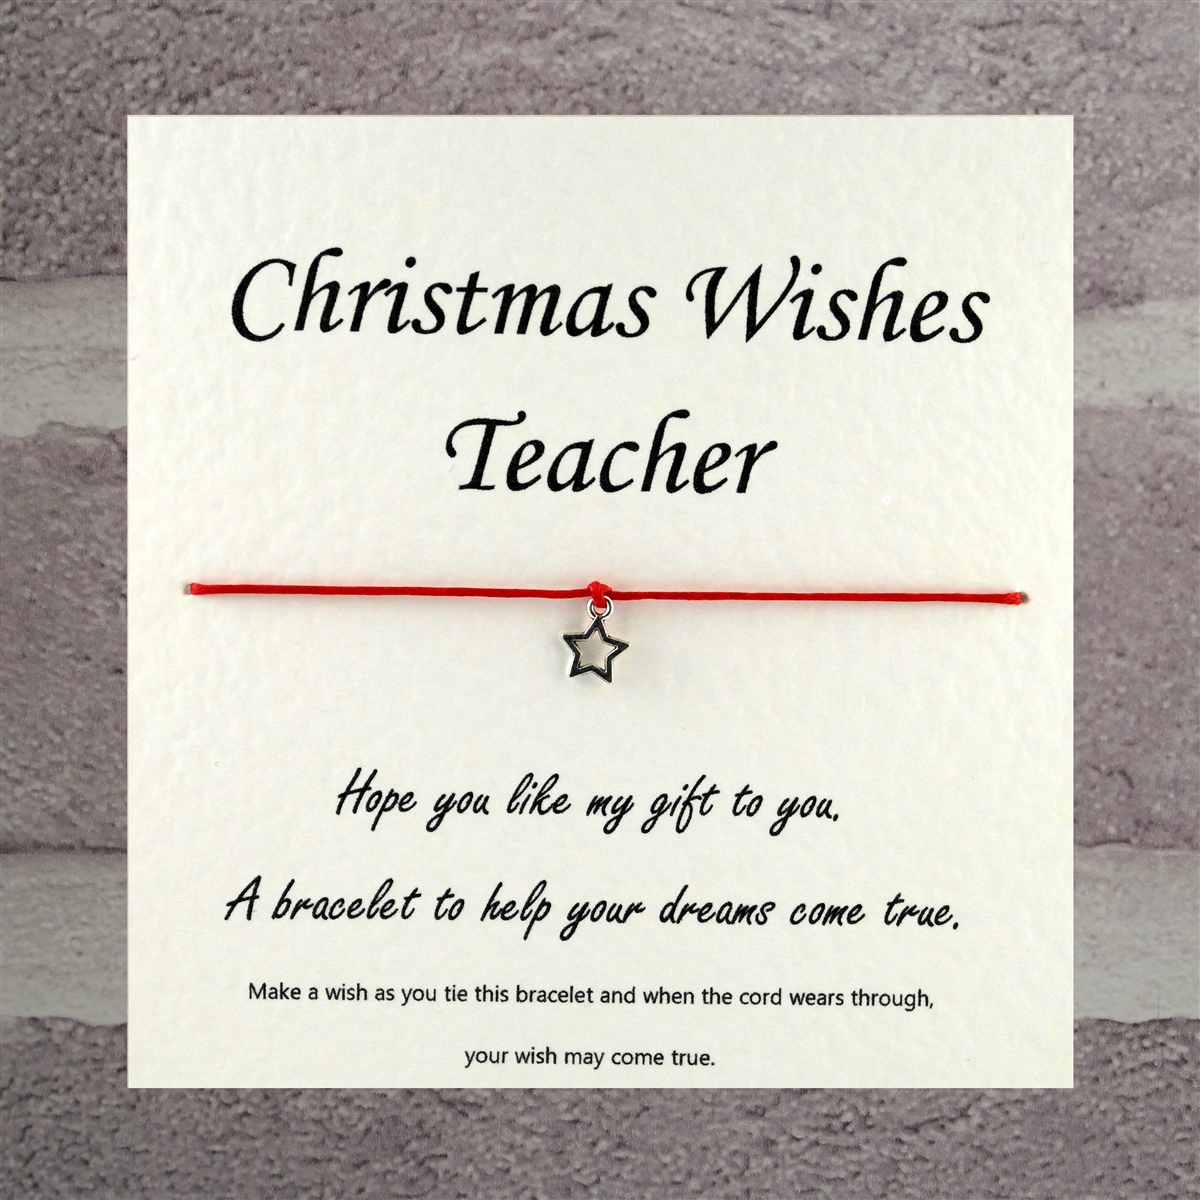 cards to teachers wishing merry Christmas